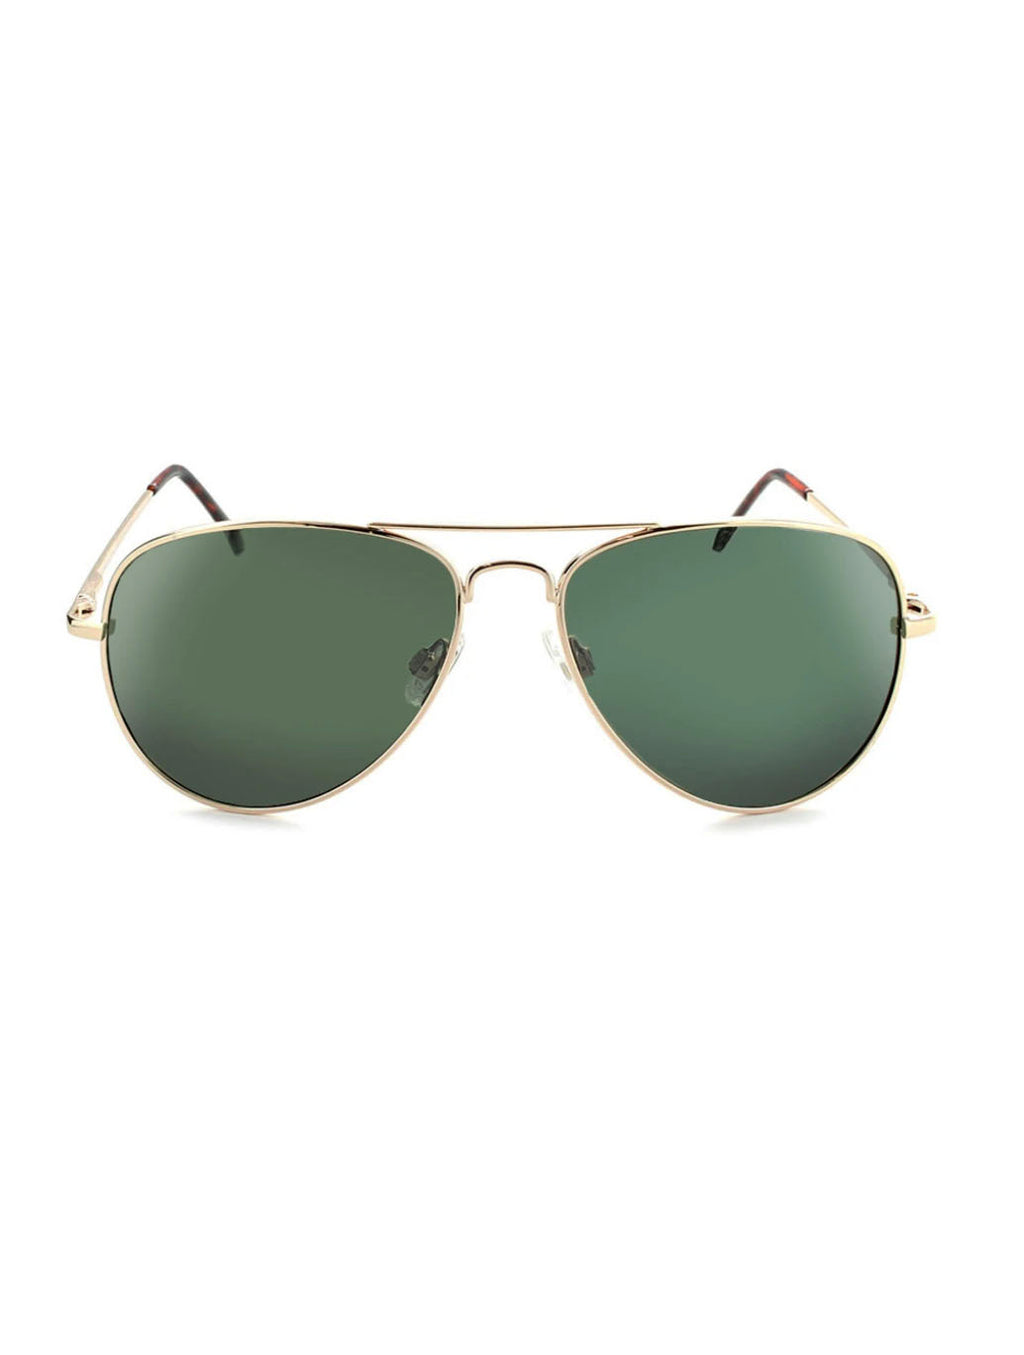 ONE Estrada Sunglasses in Gold